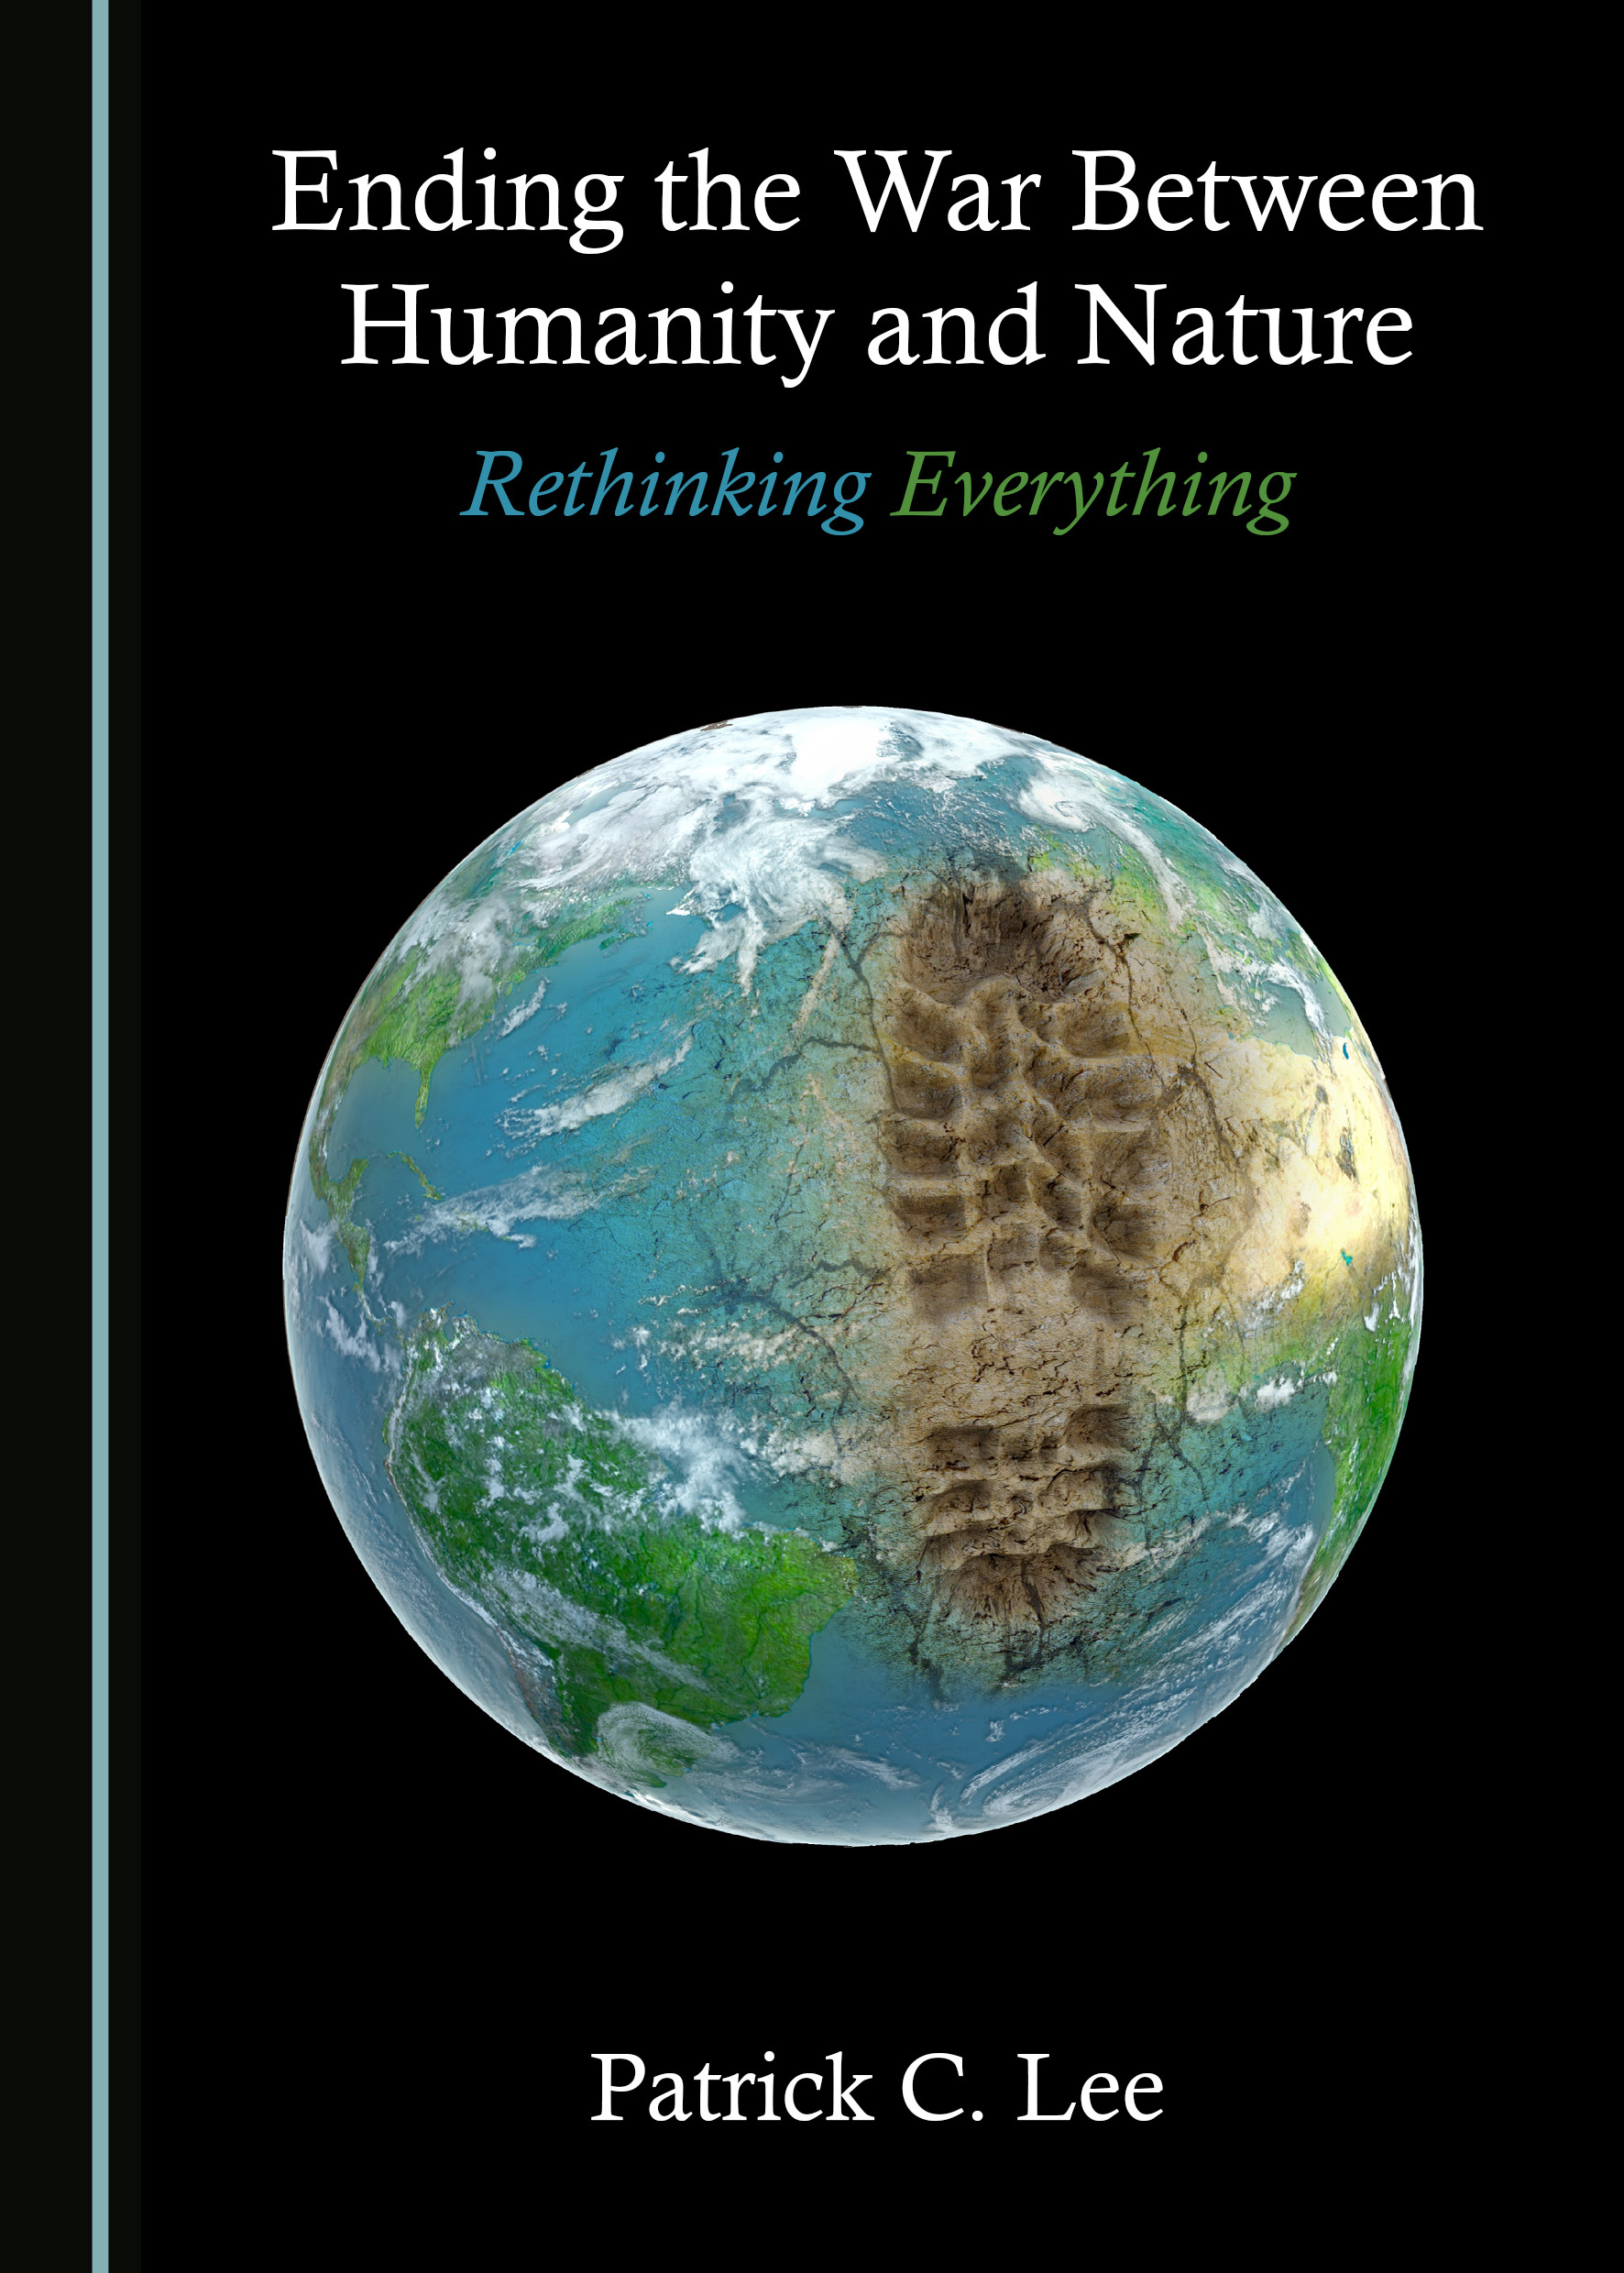 Ending the War Between Humanity and Nature: Rethinking Everything